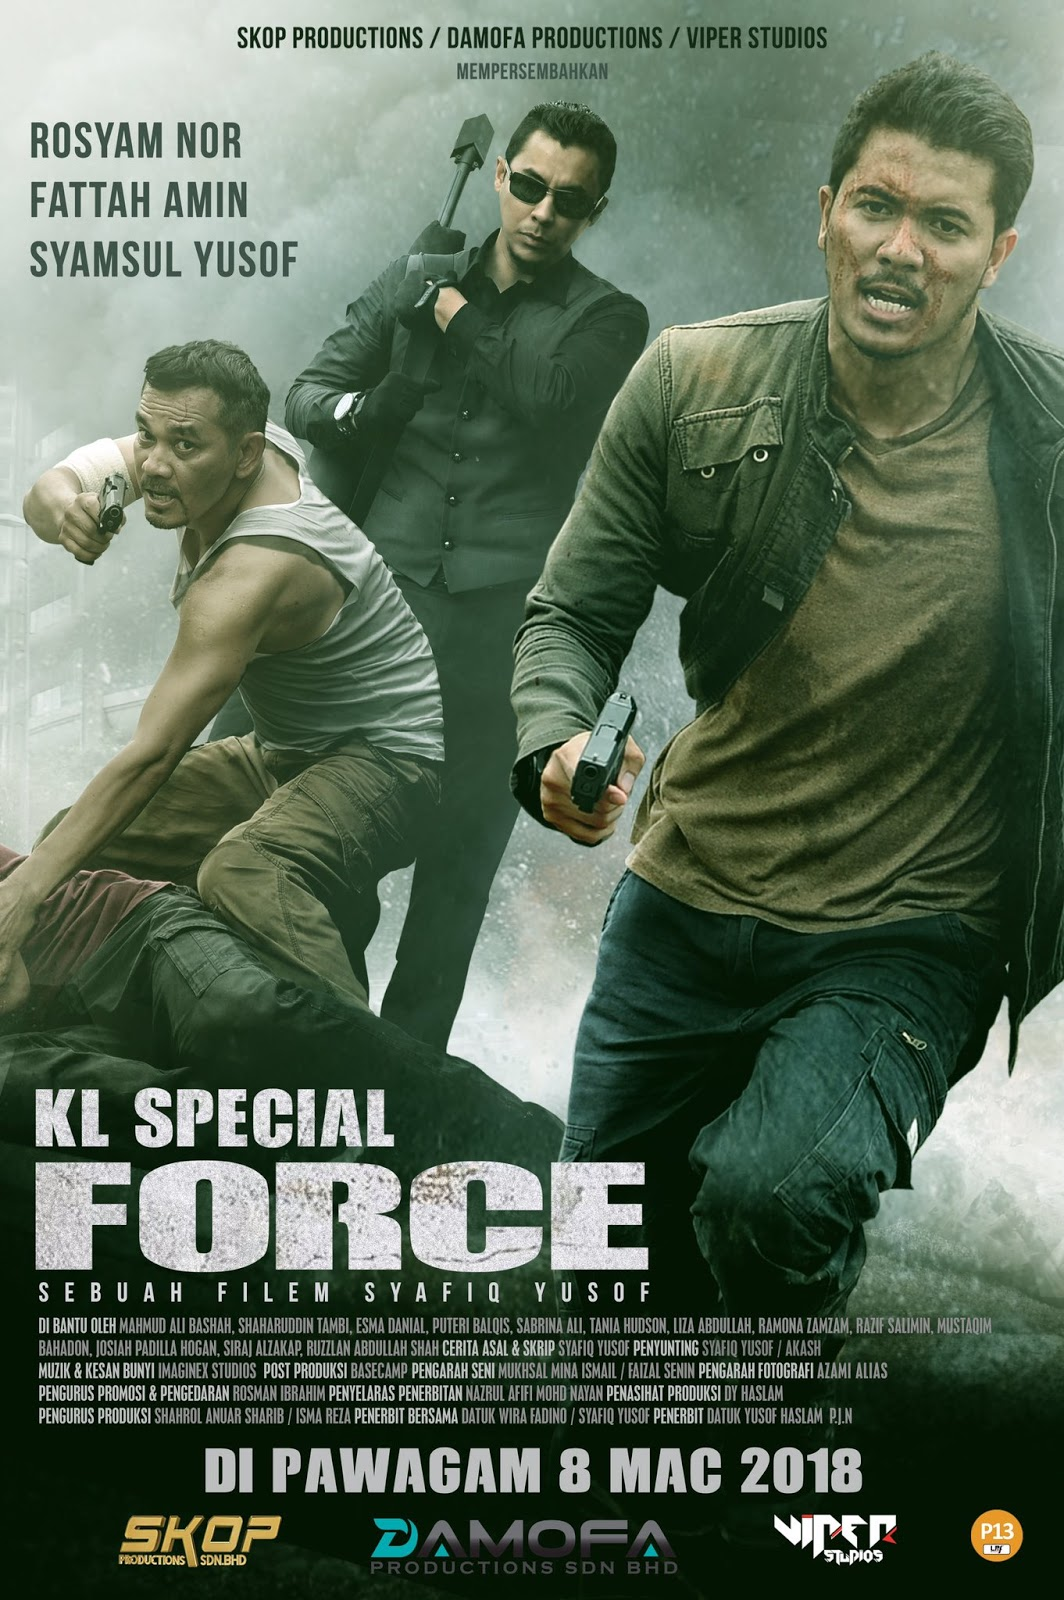 KL SPECIAL FORCE Unleashes Anarchy In The Latest Trailer For The Malaysian  Action Thriller